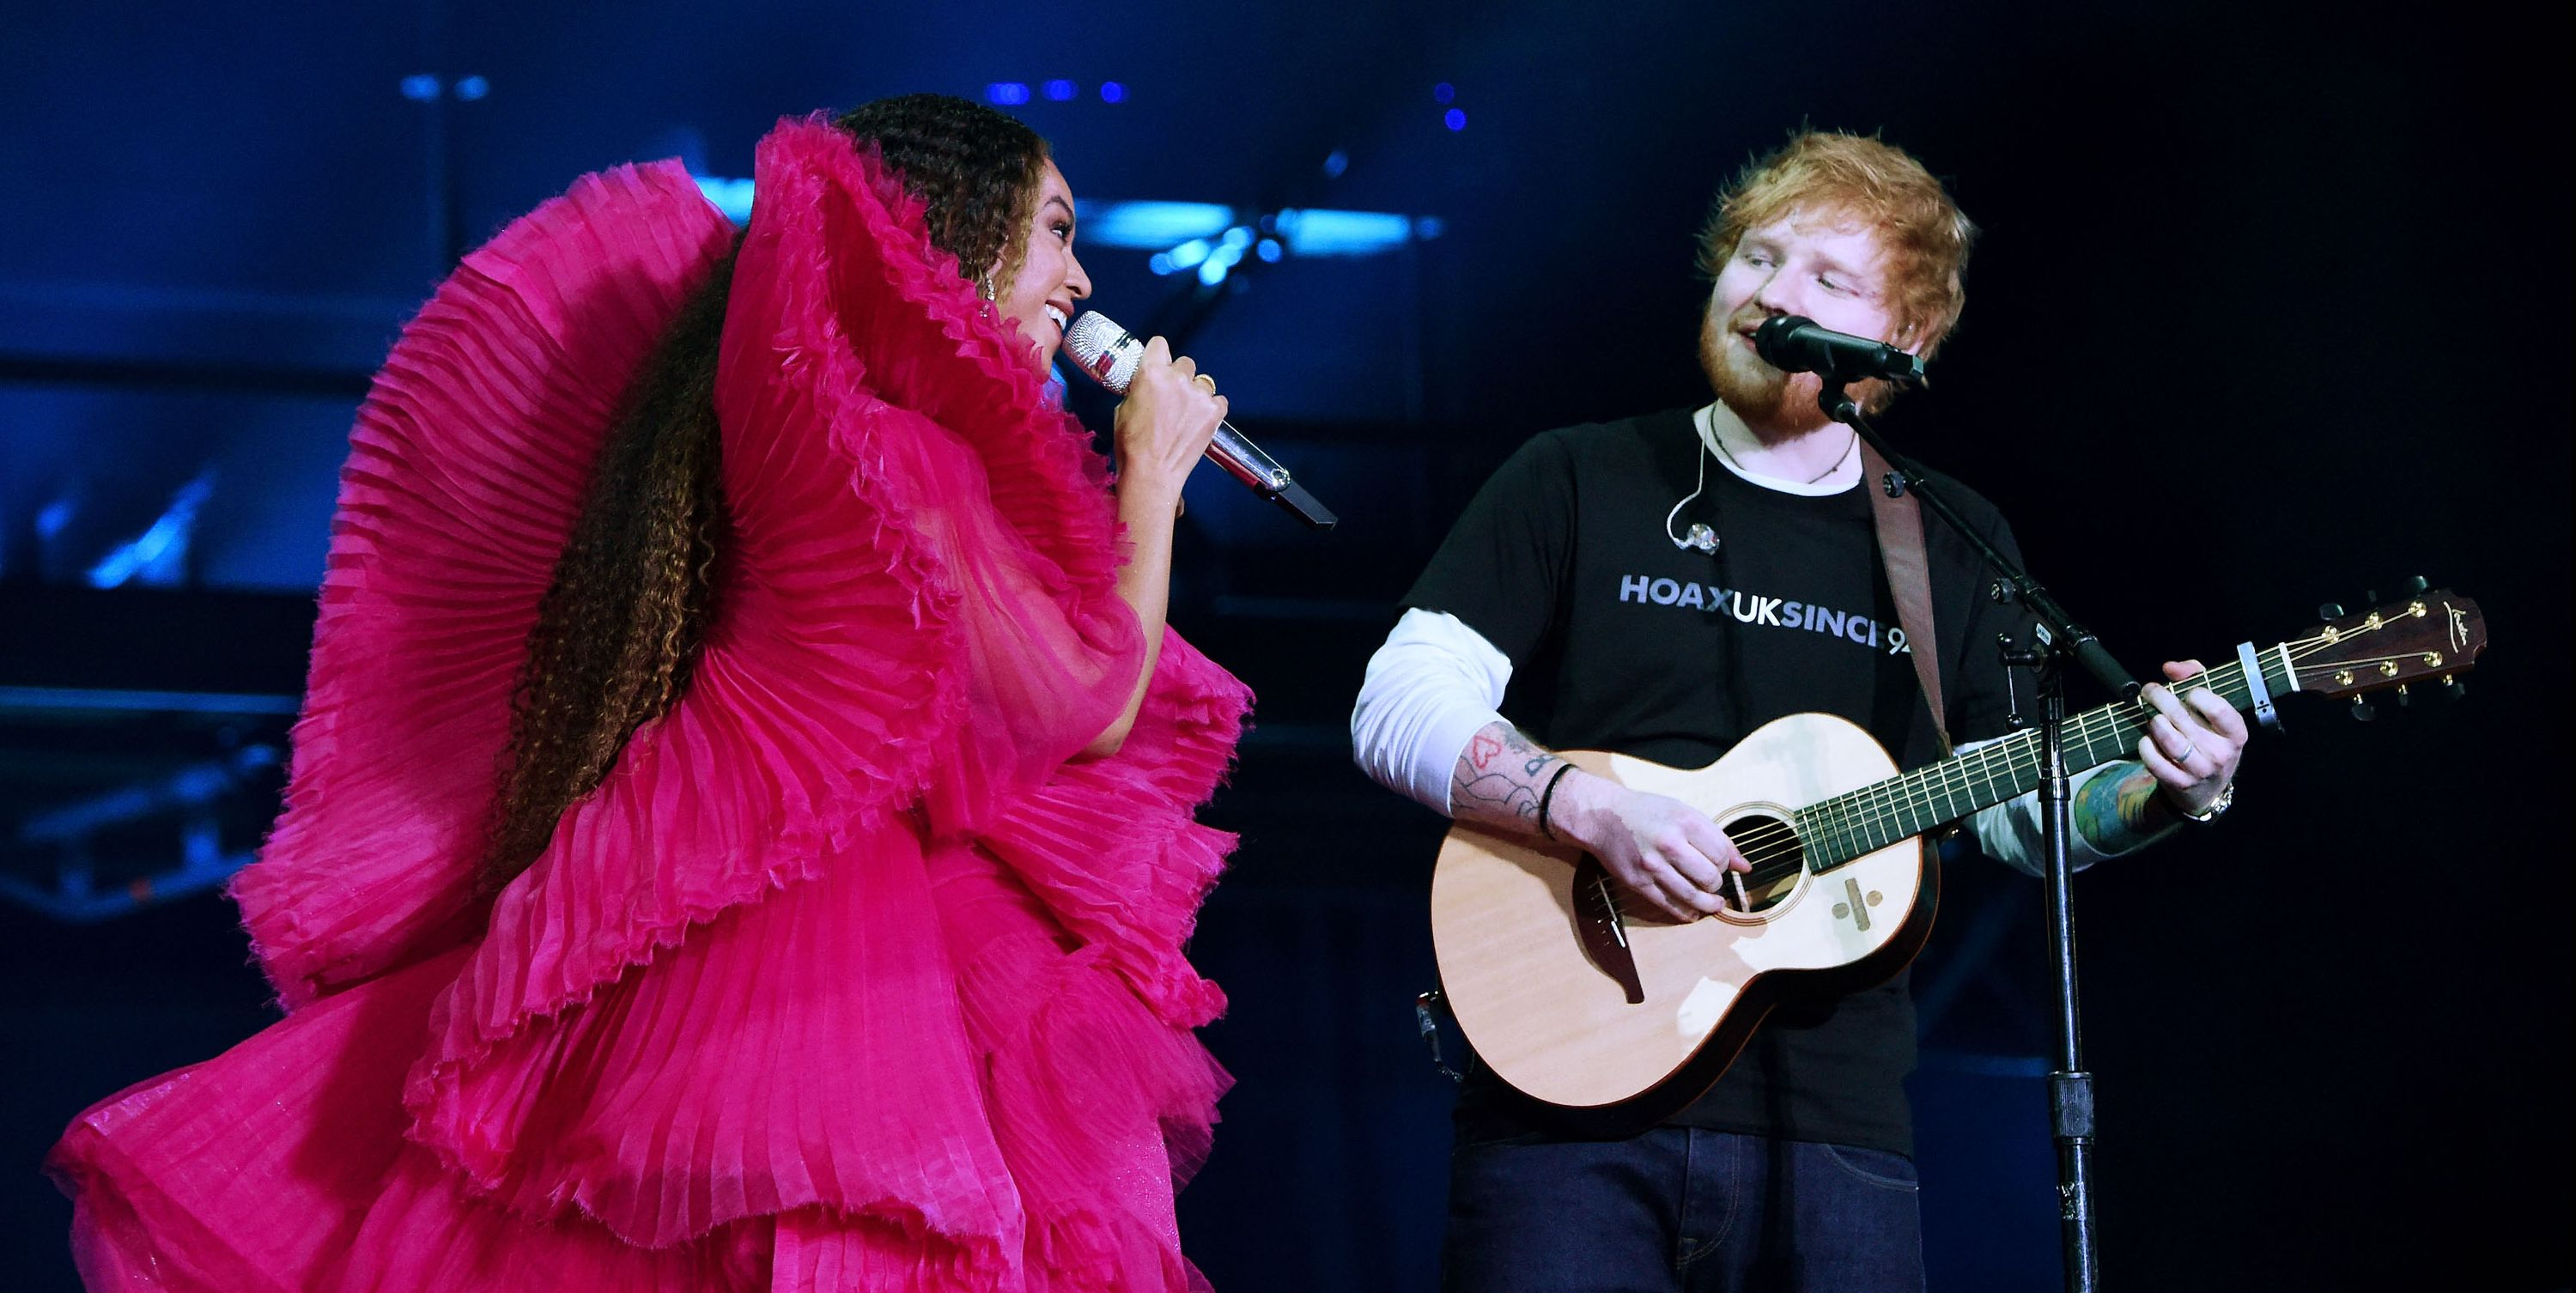 Is it Legal For Ed Sheeran to Dress Like This in Front of Beyoncé?